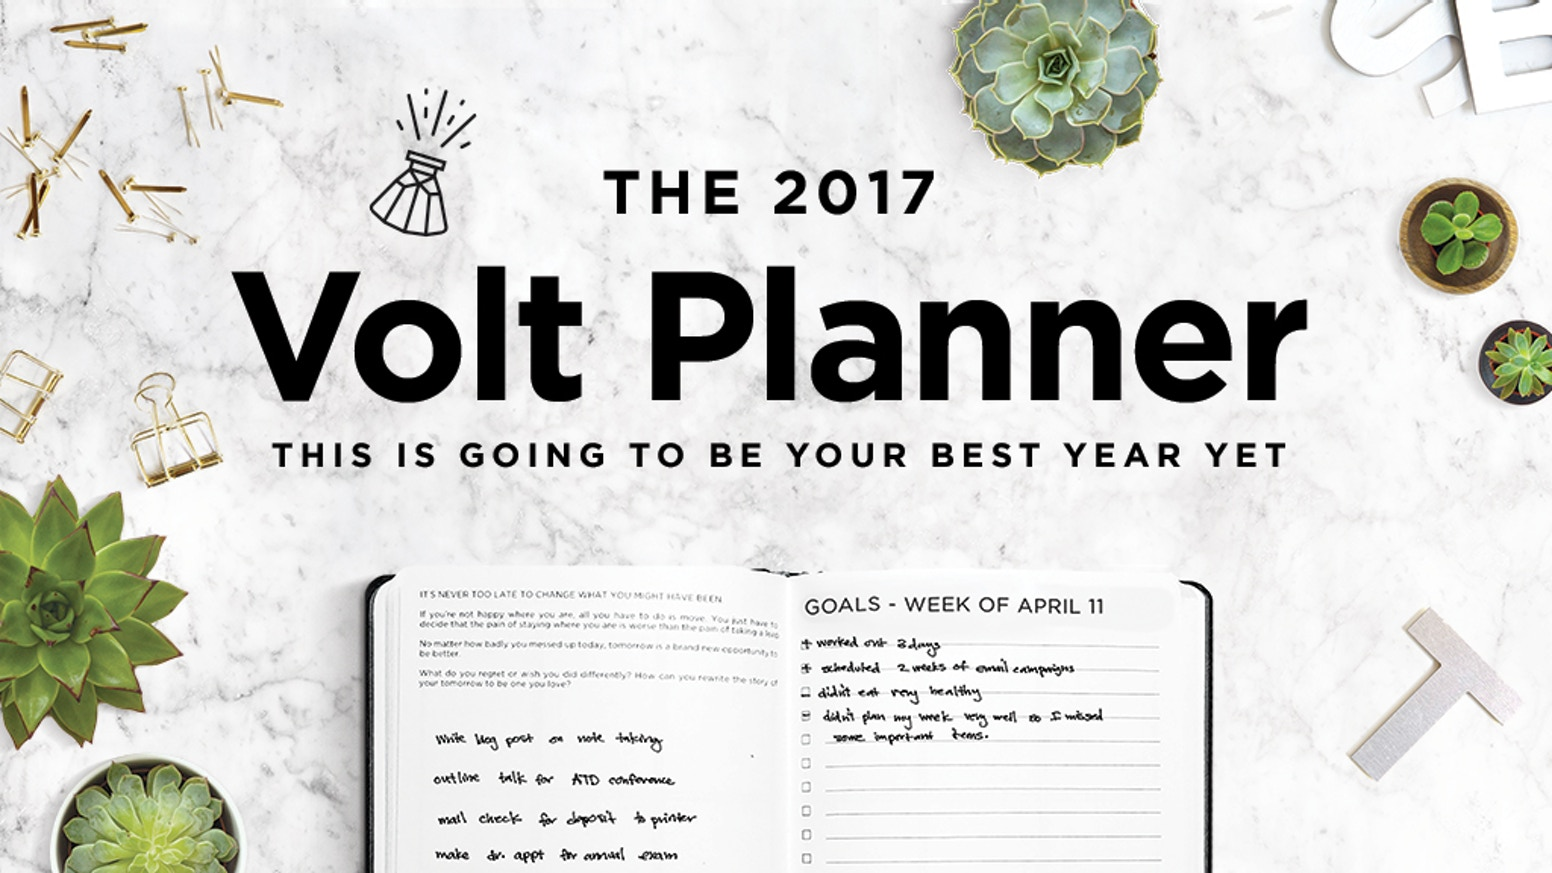 volt planner reach your goals in 2017 by kate matsudaira a proven goal setting planning and productivity system for superstars make 2017